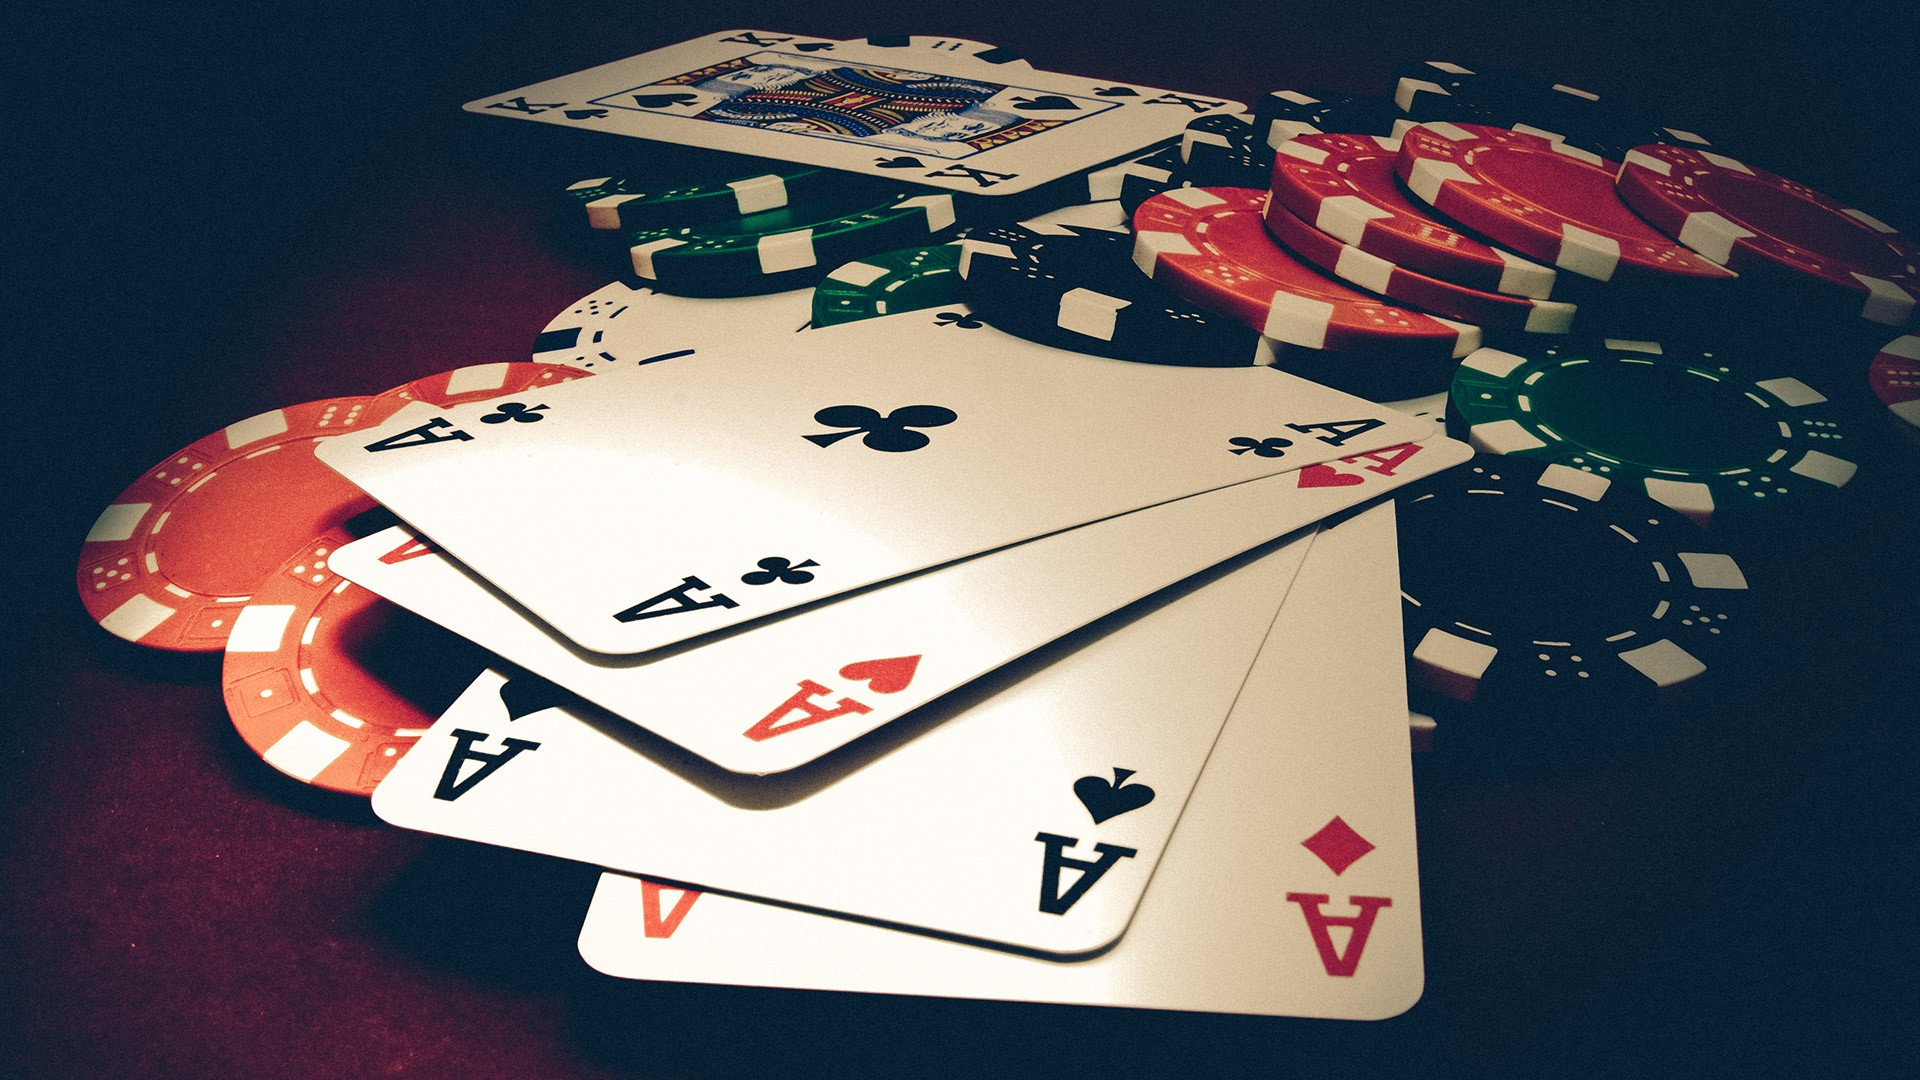 Find Out How To Make Your Product The Ferrari Of Casino